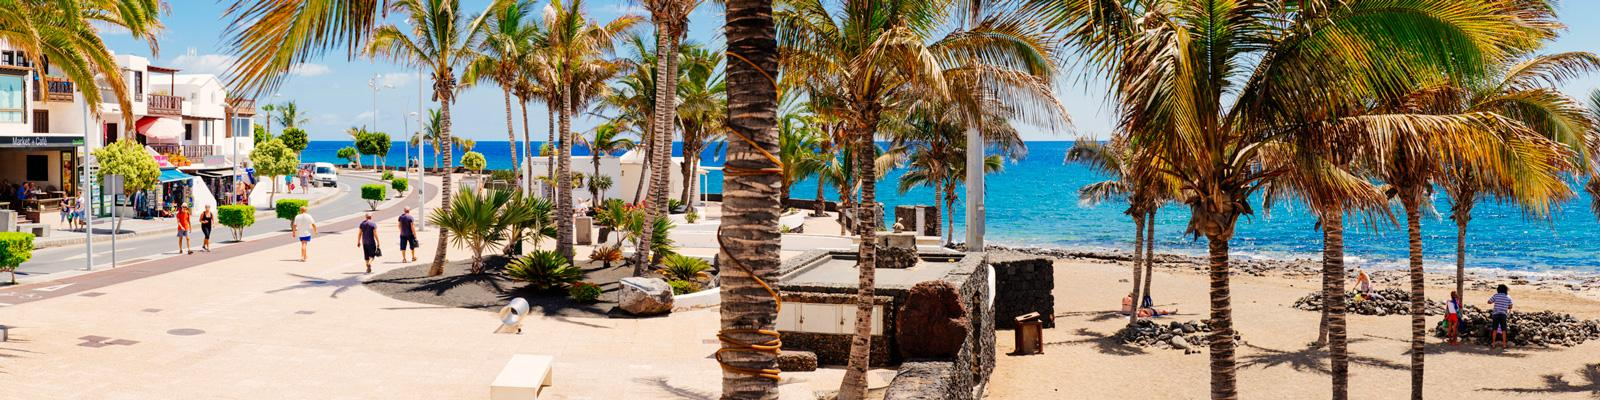 Offerta low cost 2017 - Estate a Lanzarote